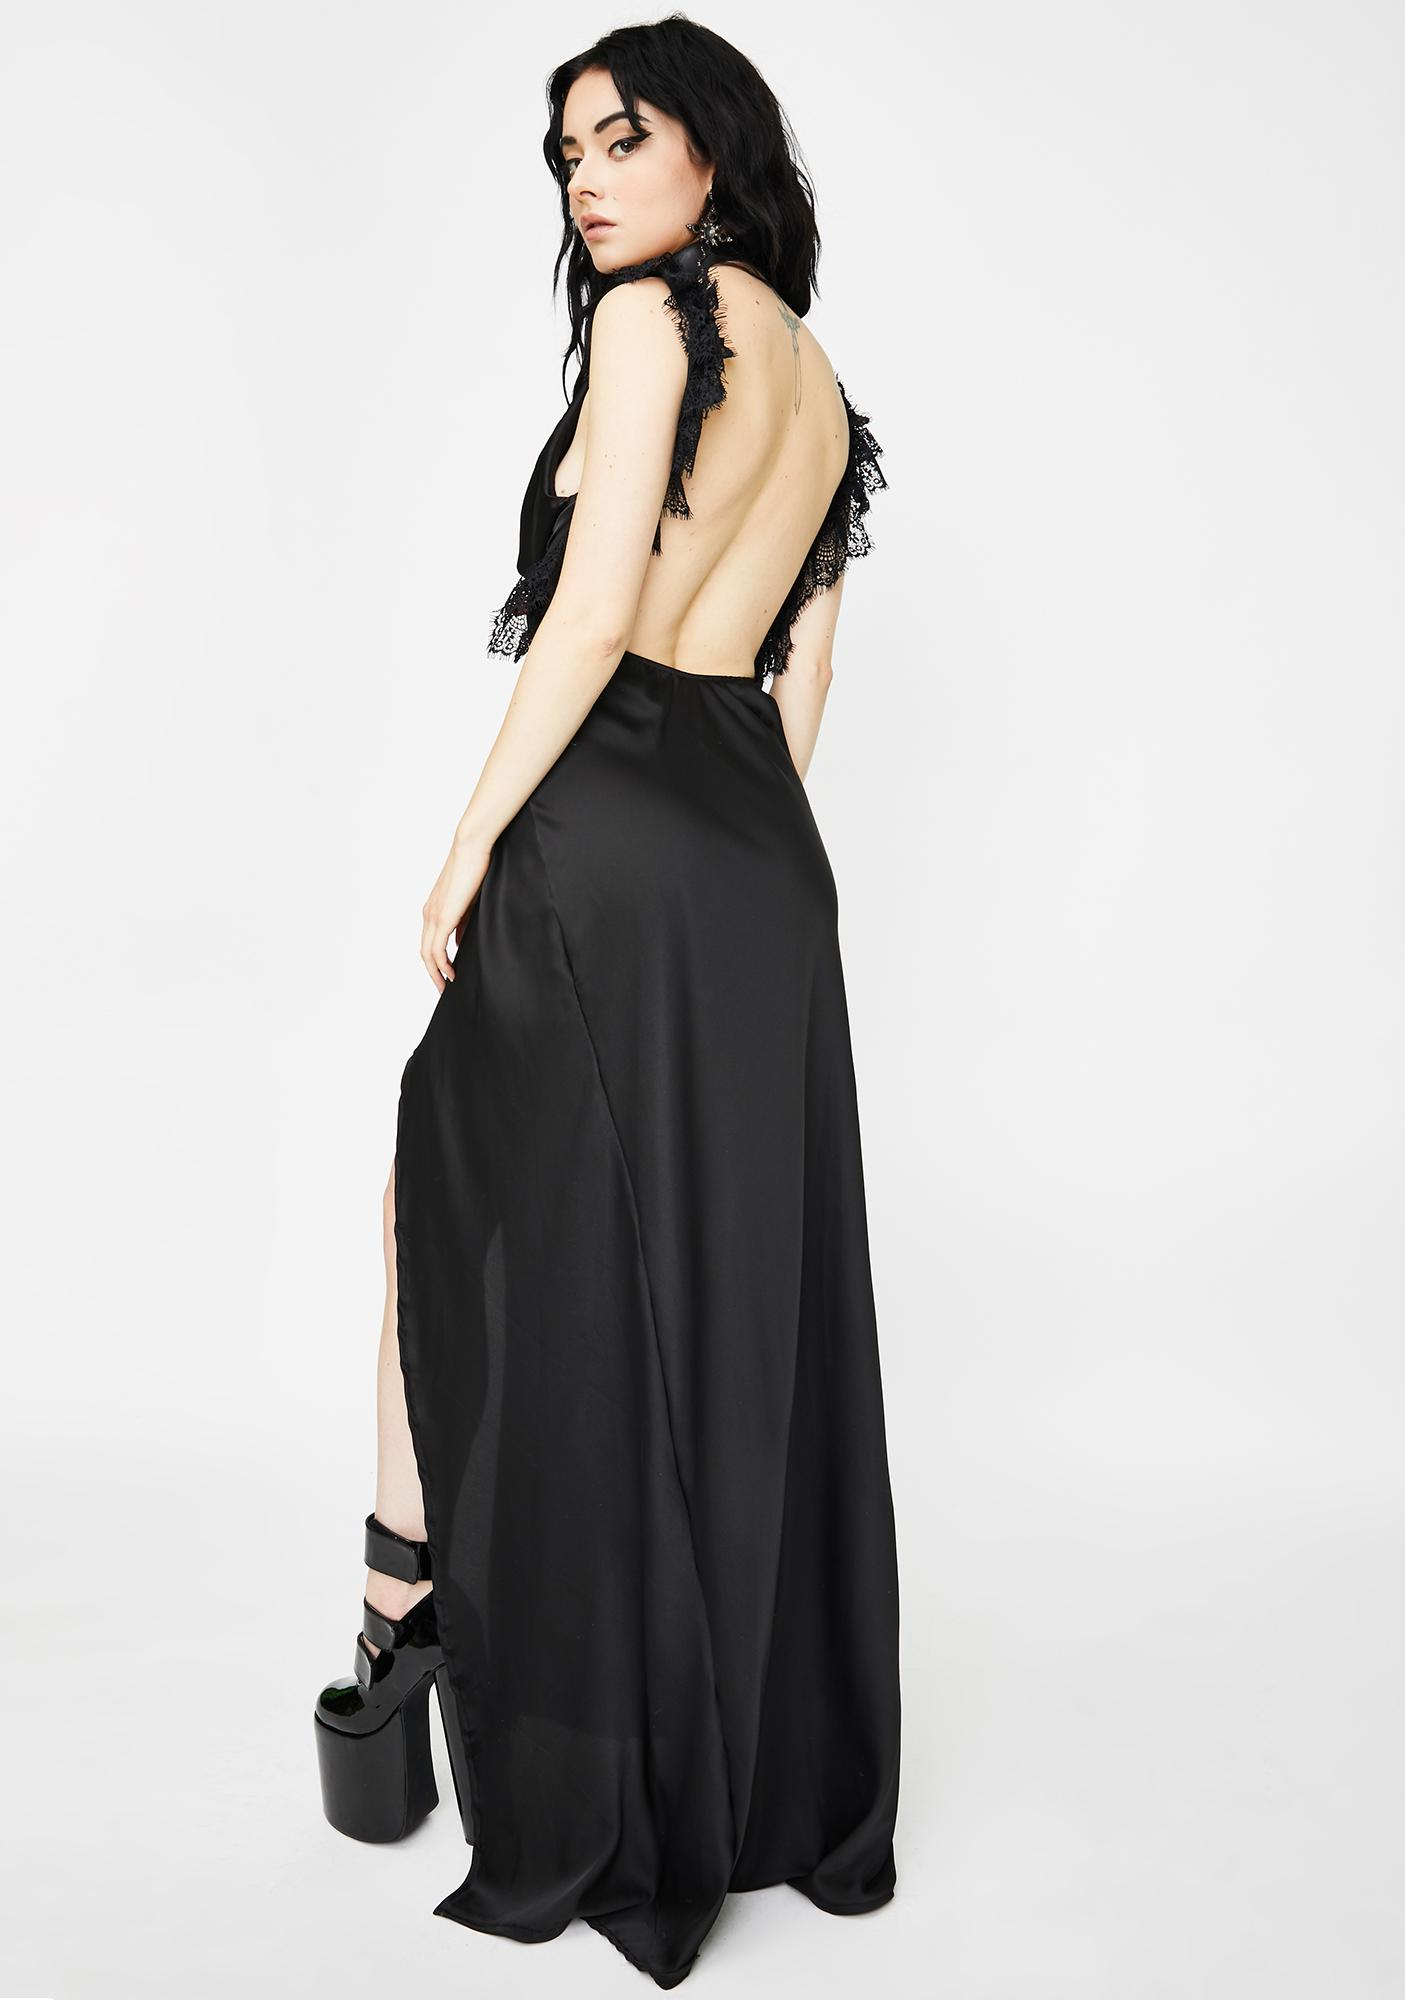 Kiki Riki Dramatic Dreams Maxi Dress